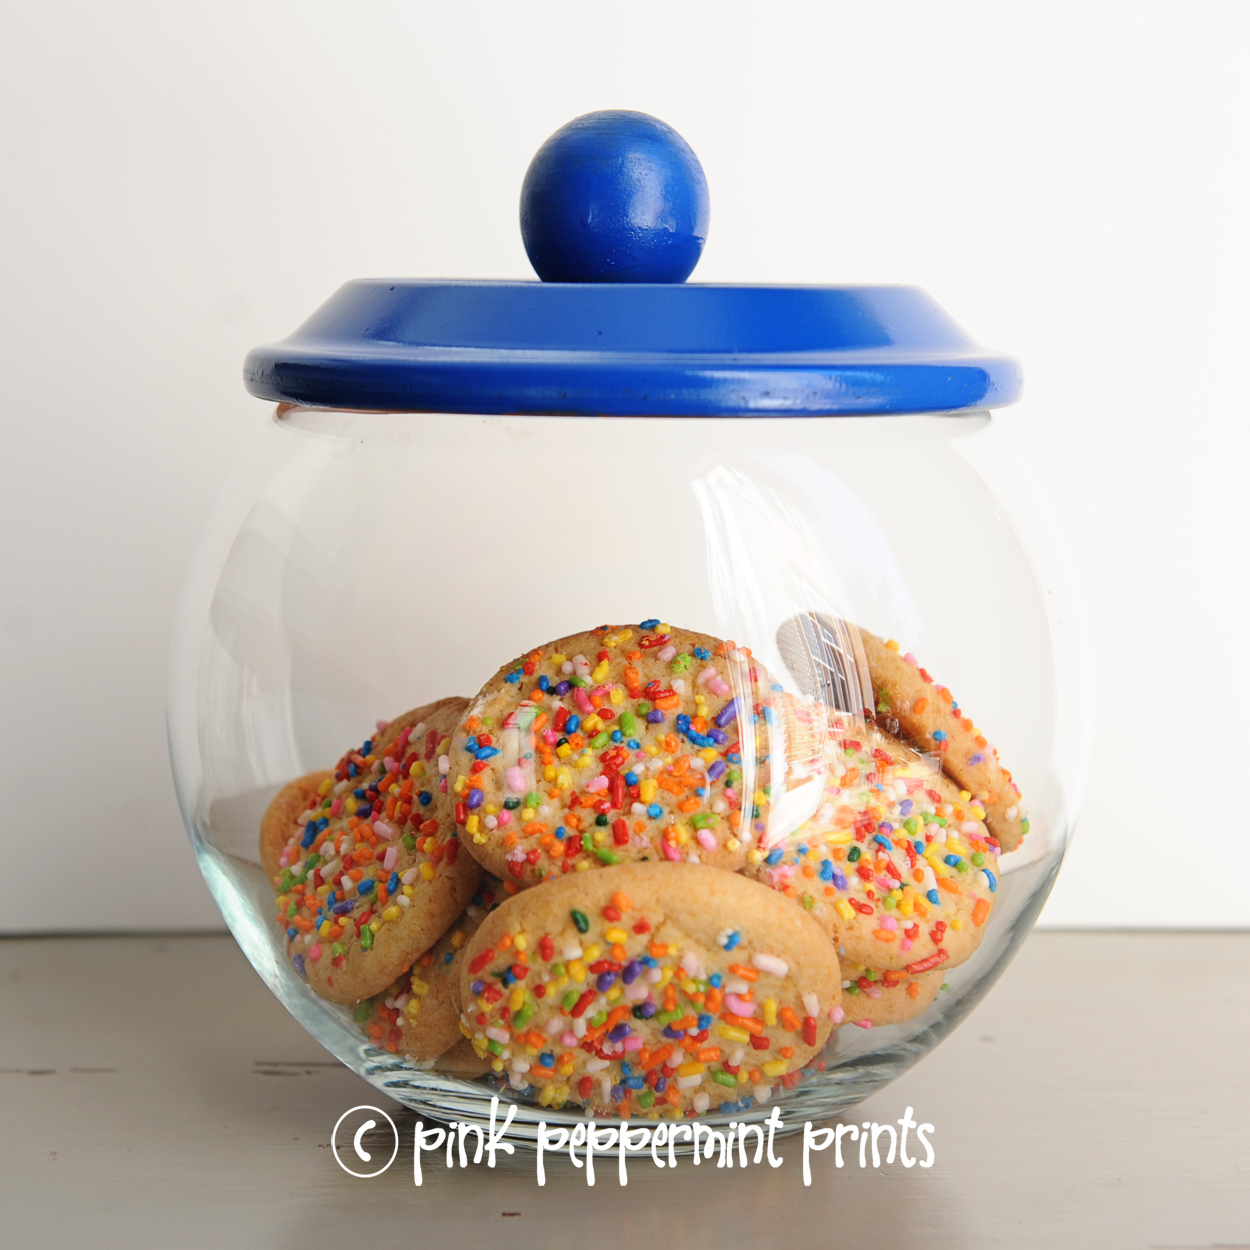 TUTORIAL: DIY Cookie Jar for Party decorations, Party Favors or Cute DIY Gift